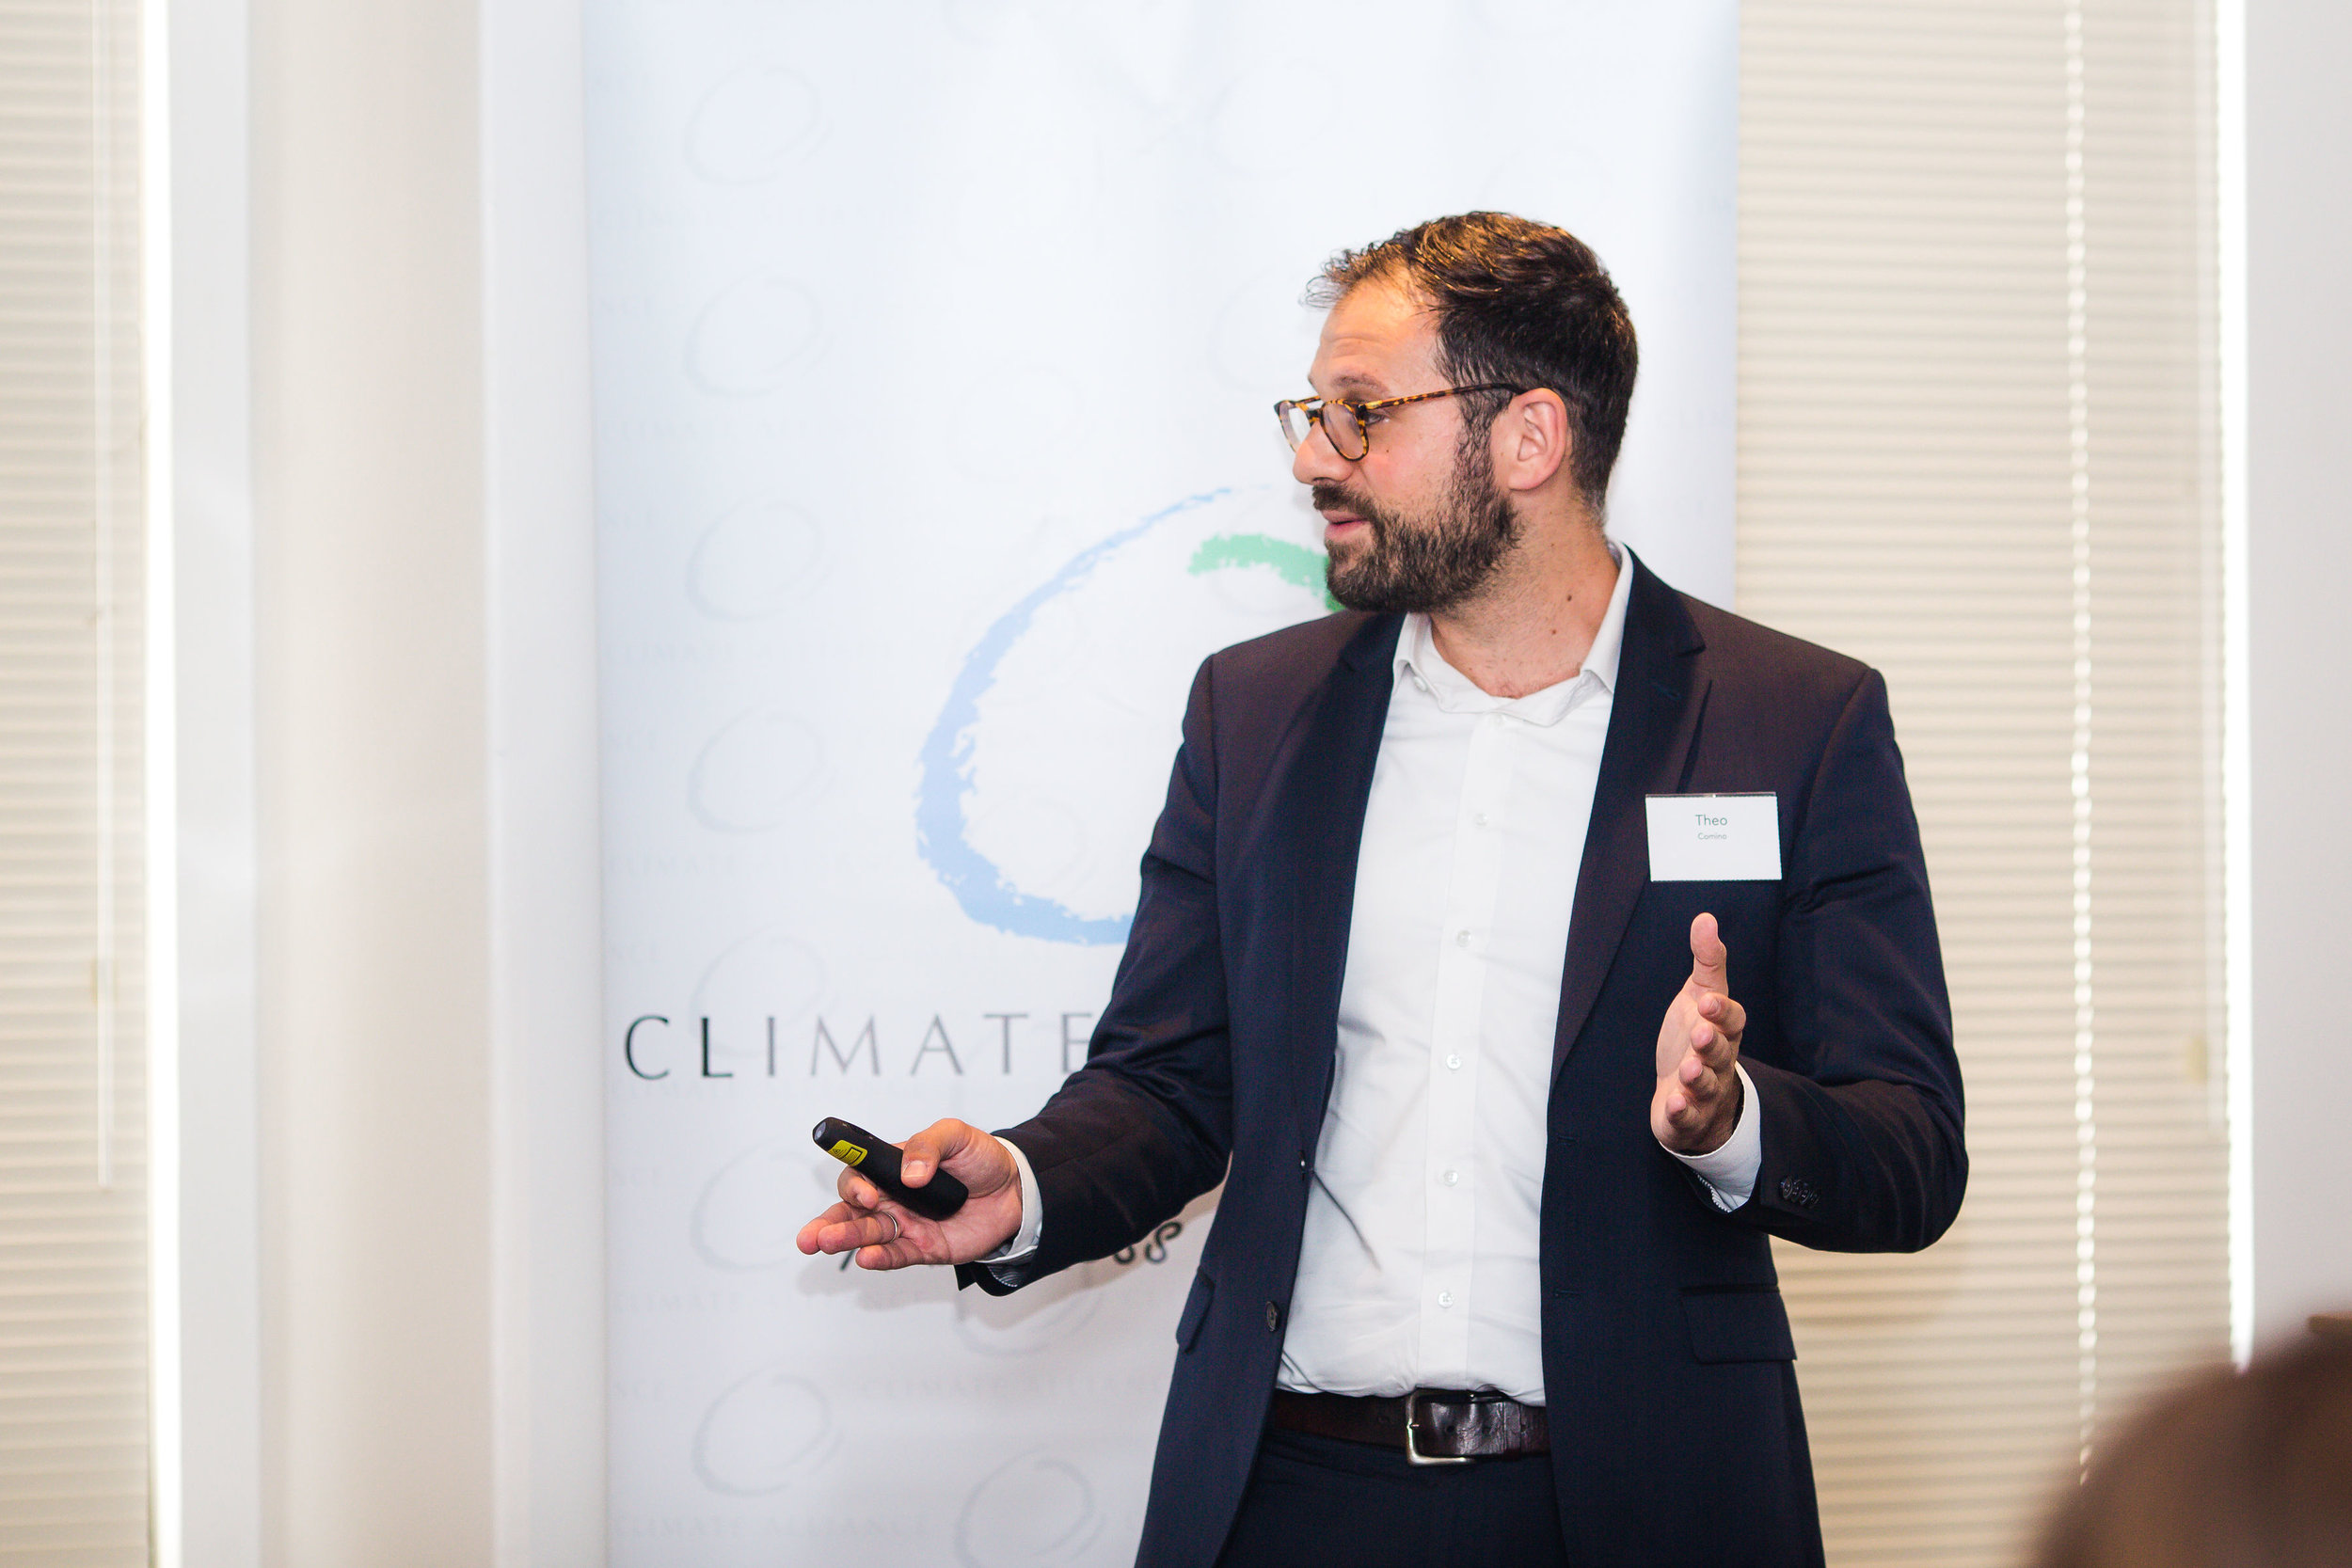 Theo Comino, Manager Greenhouse and Sustainability at AGL